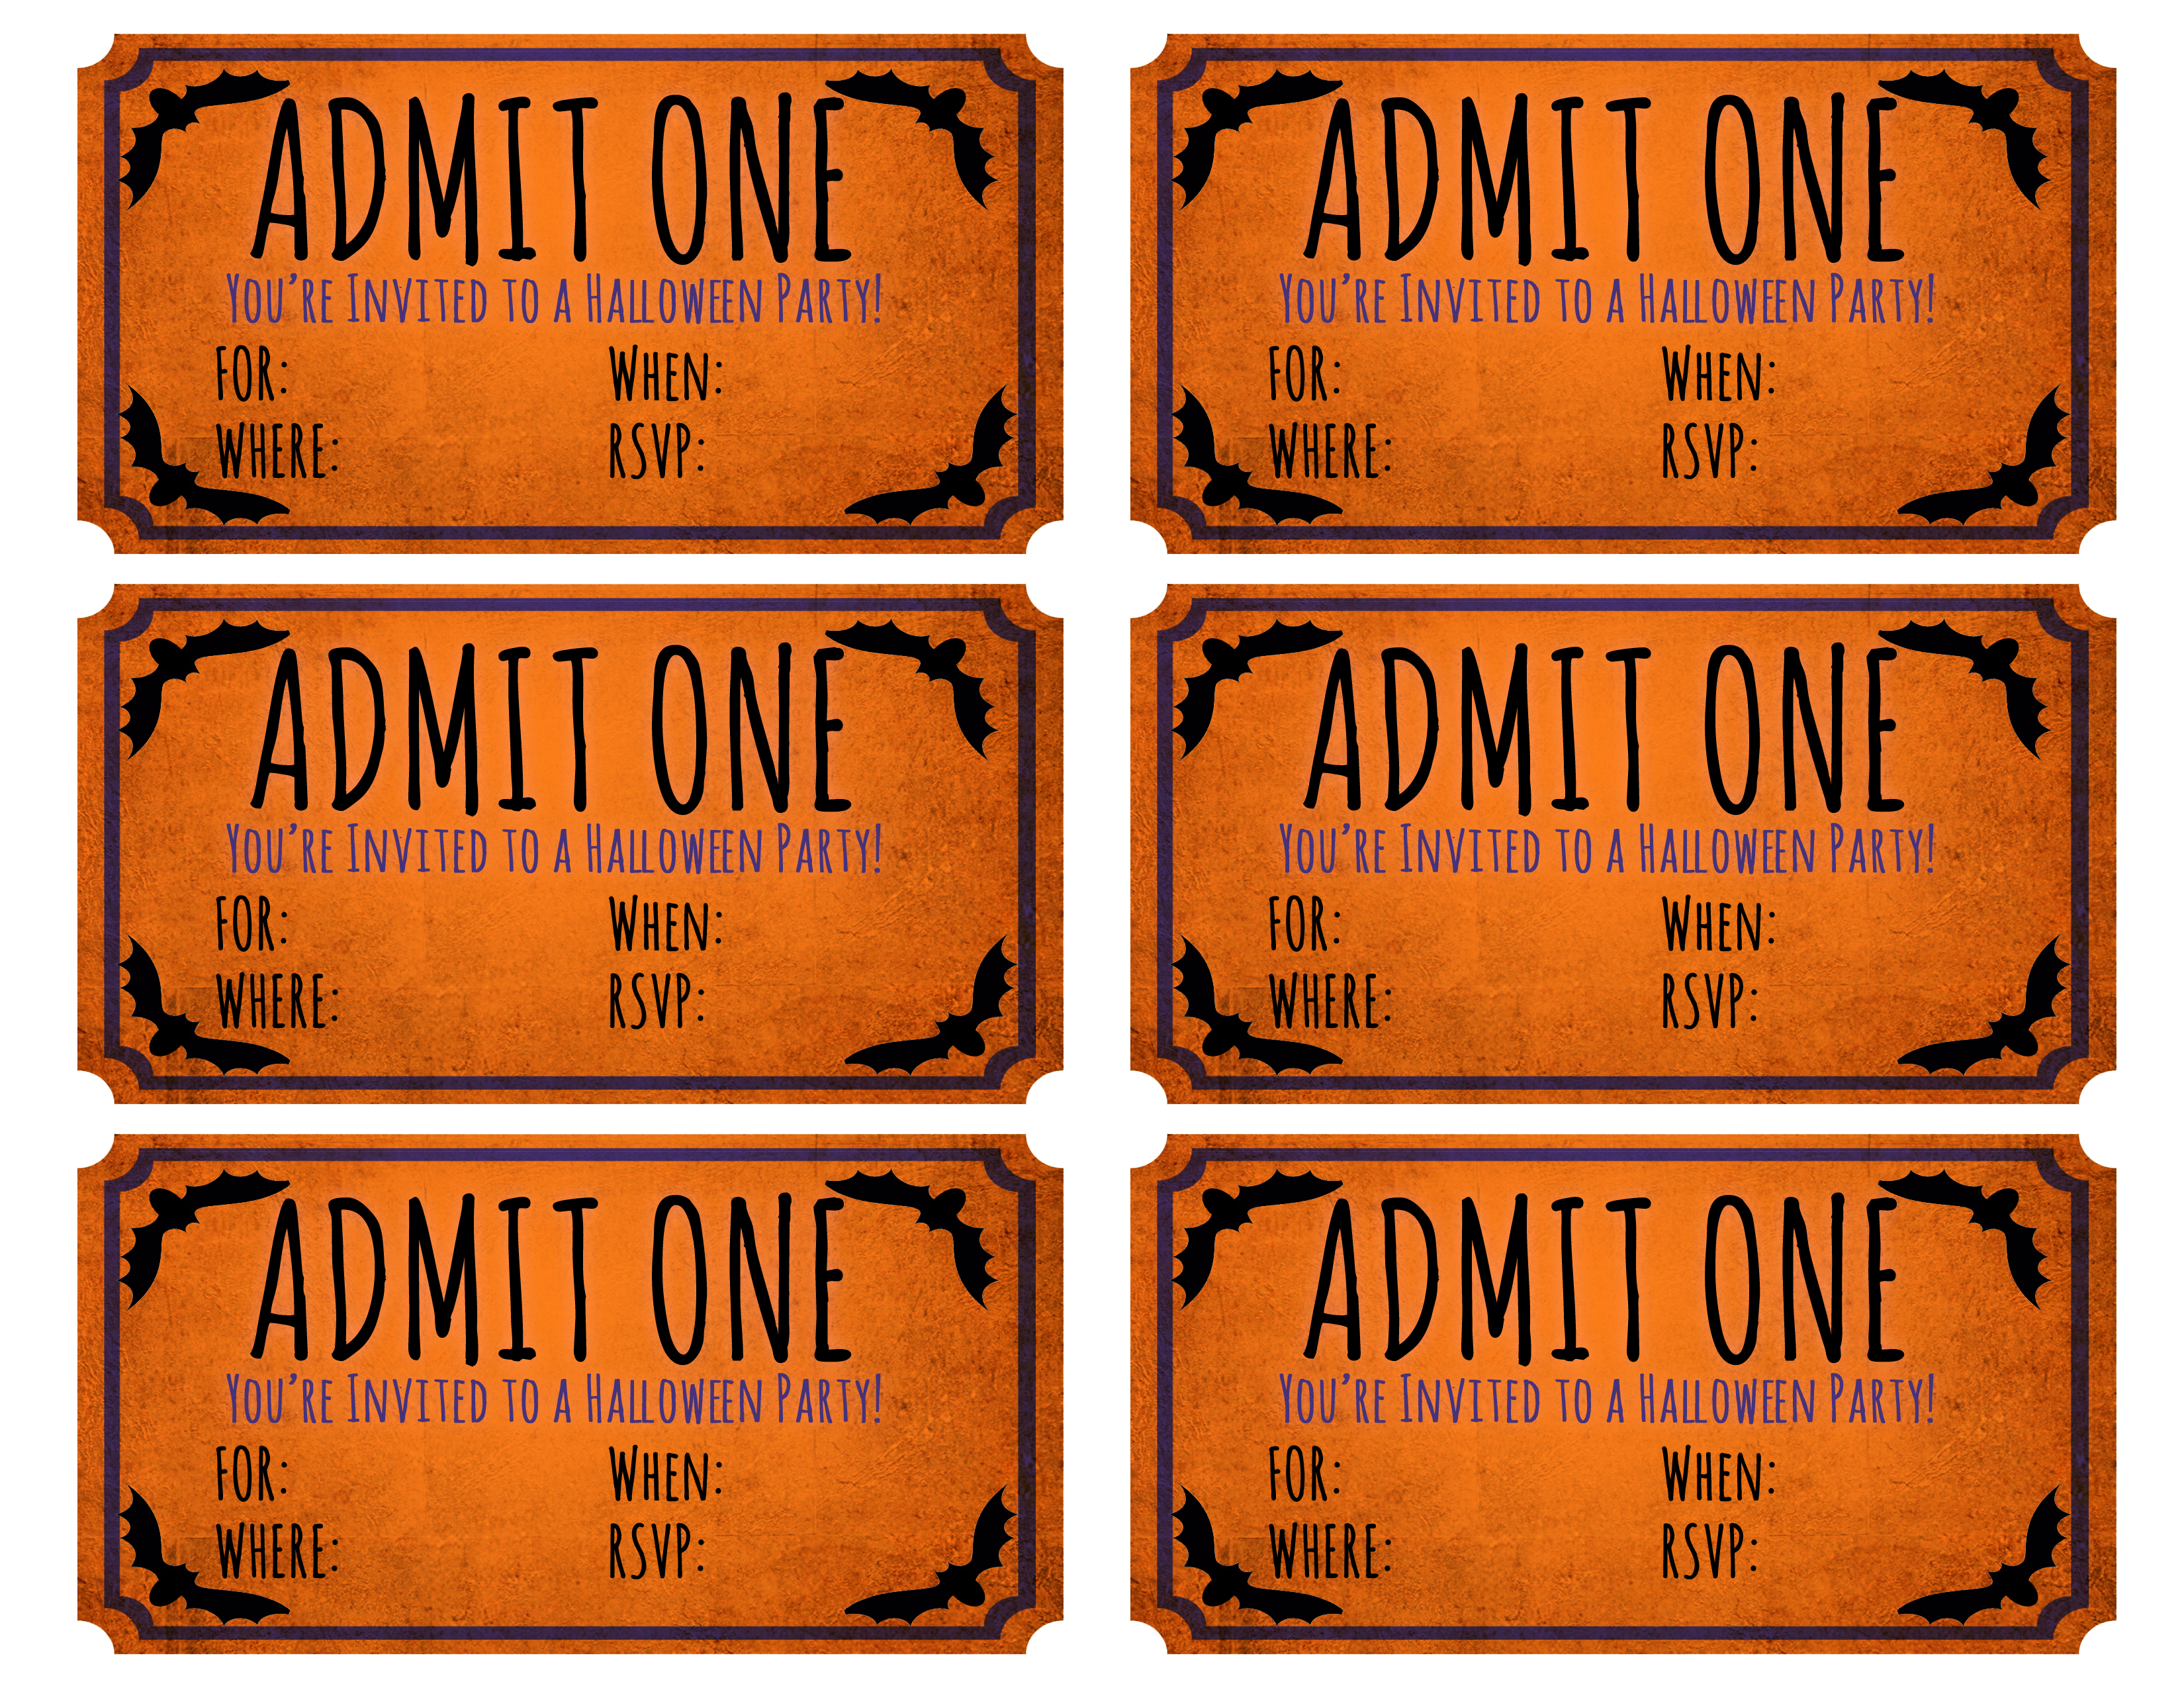 Blank Movie Ticket   Free Download Best Blank Movie Ticket On - Free Printable Admission Ticket Template